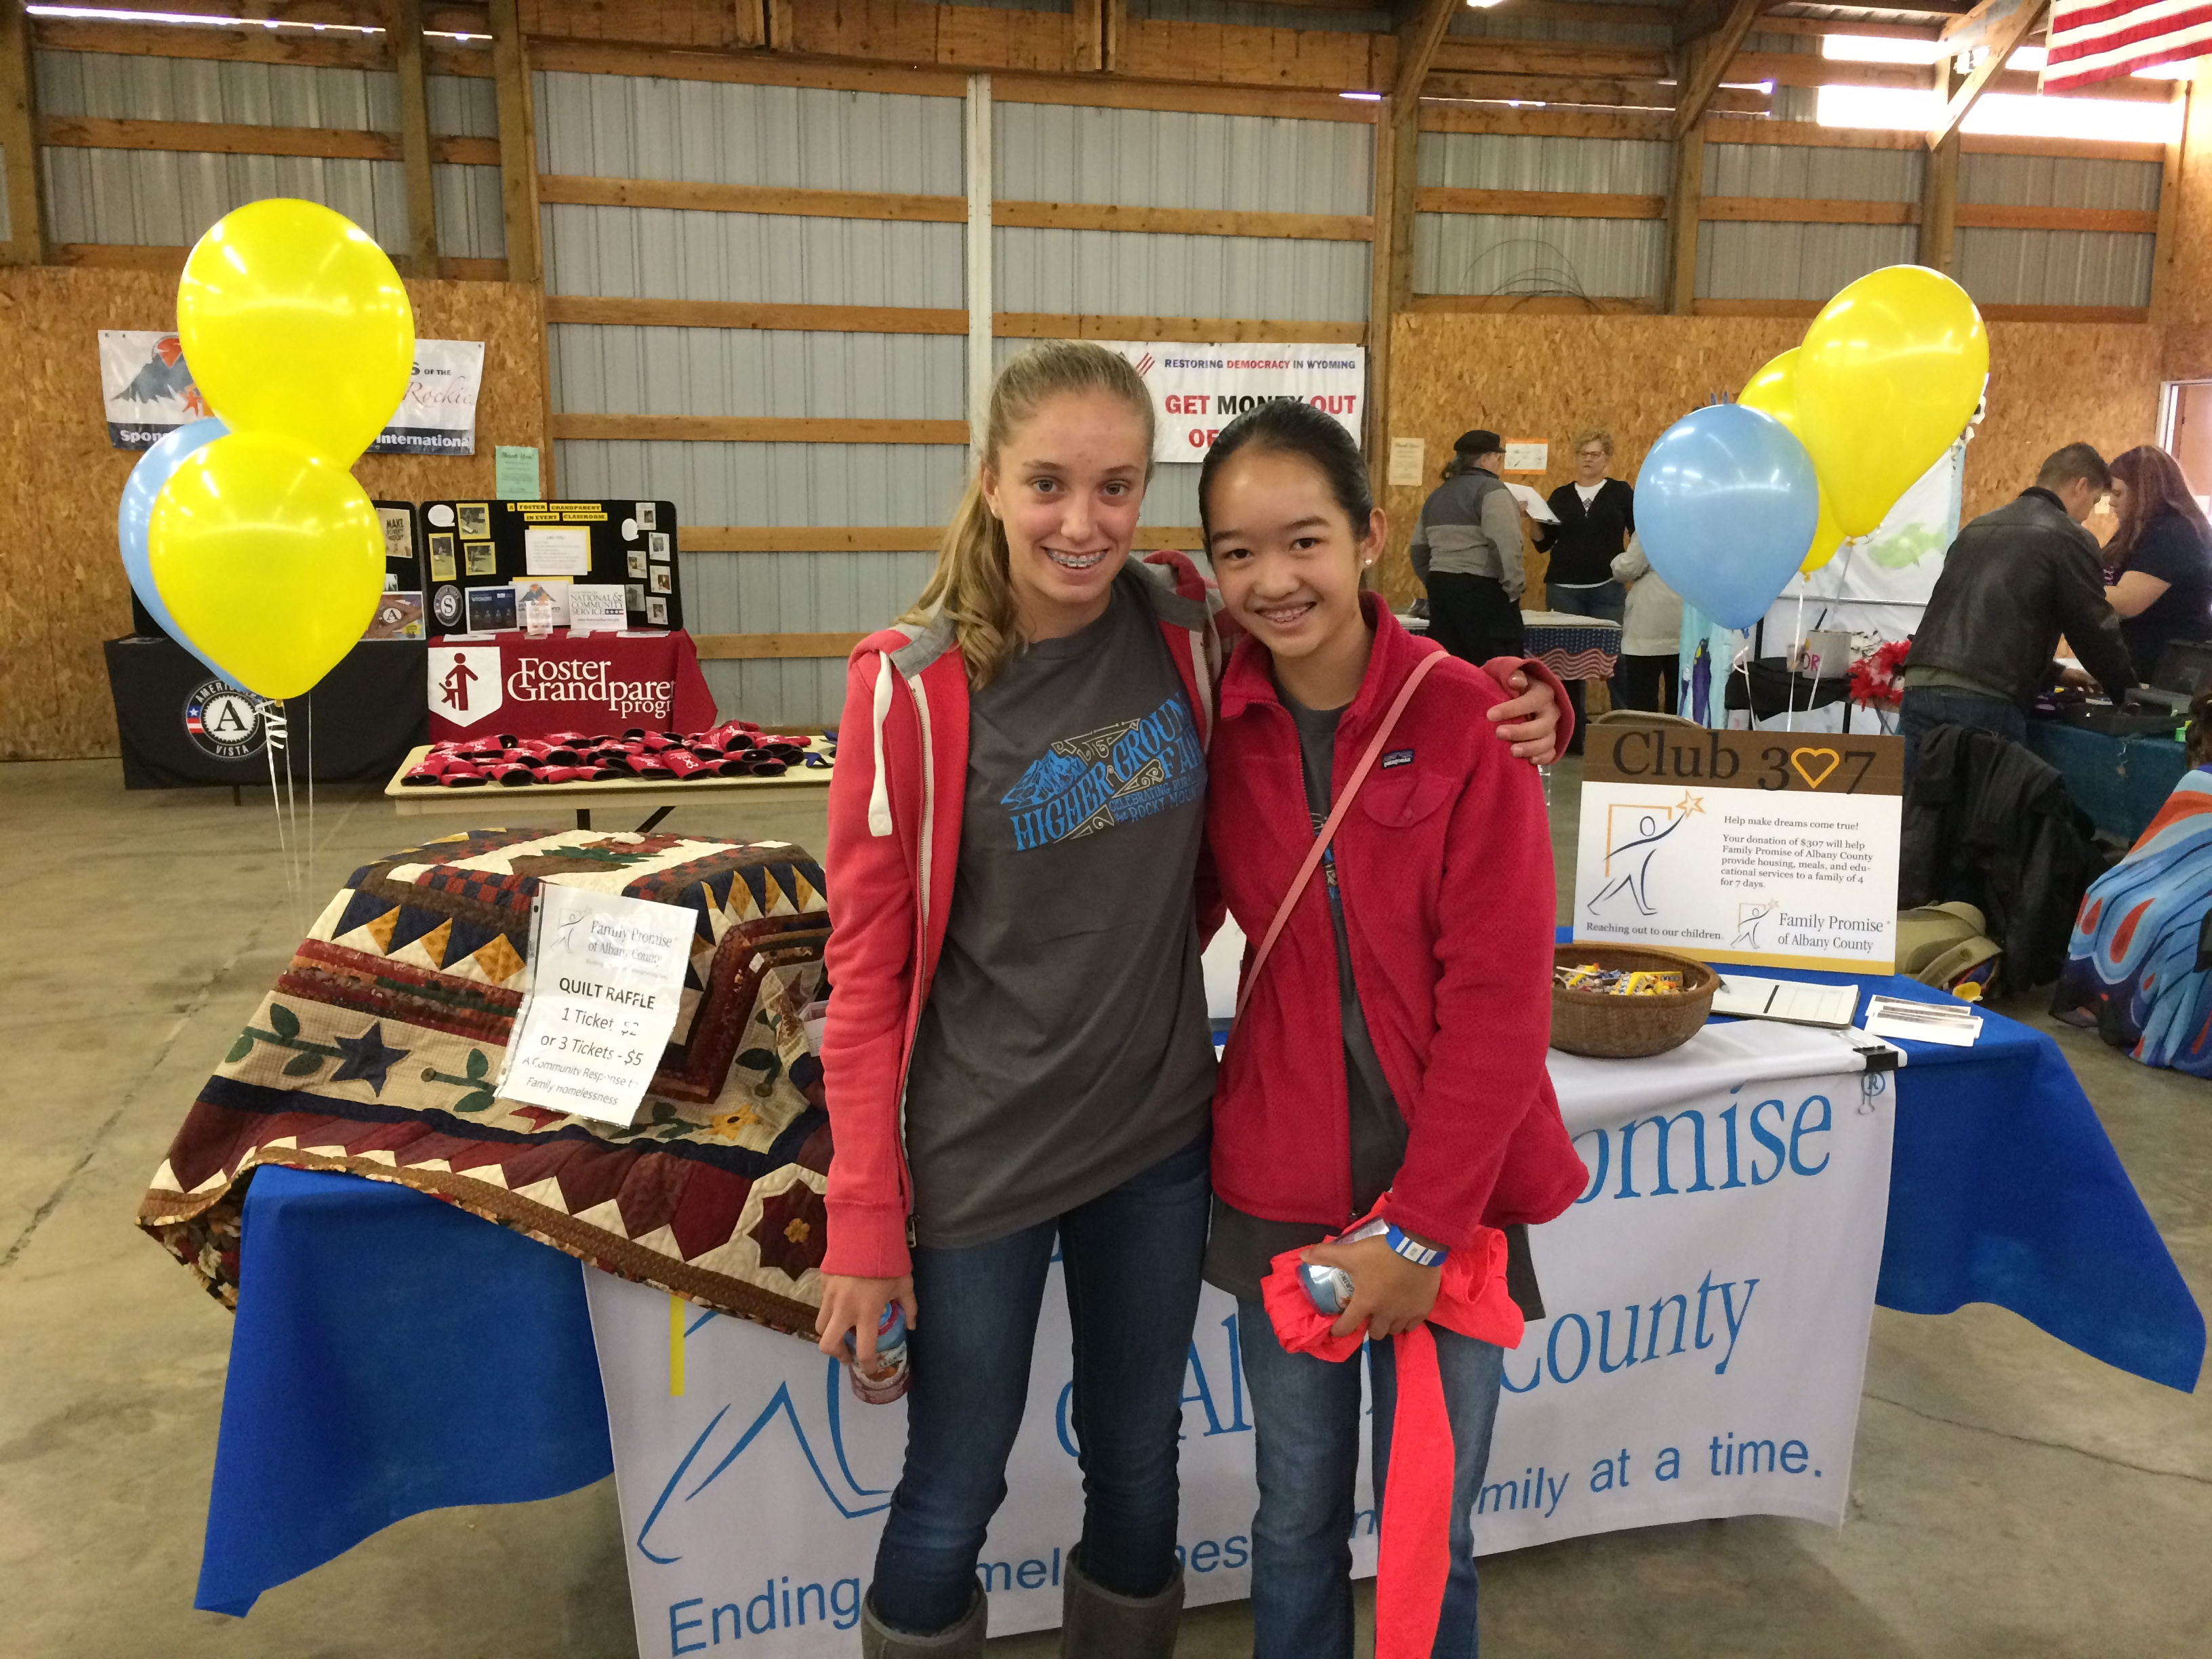 Two high school-aged girls standing in front of a table at a volunteer event